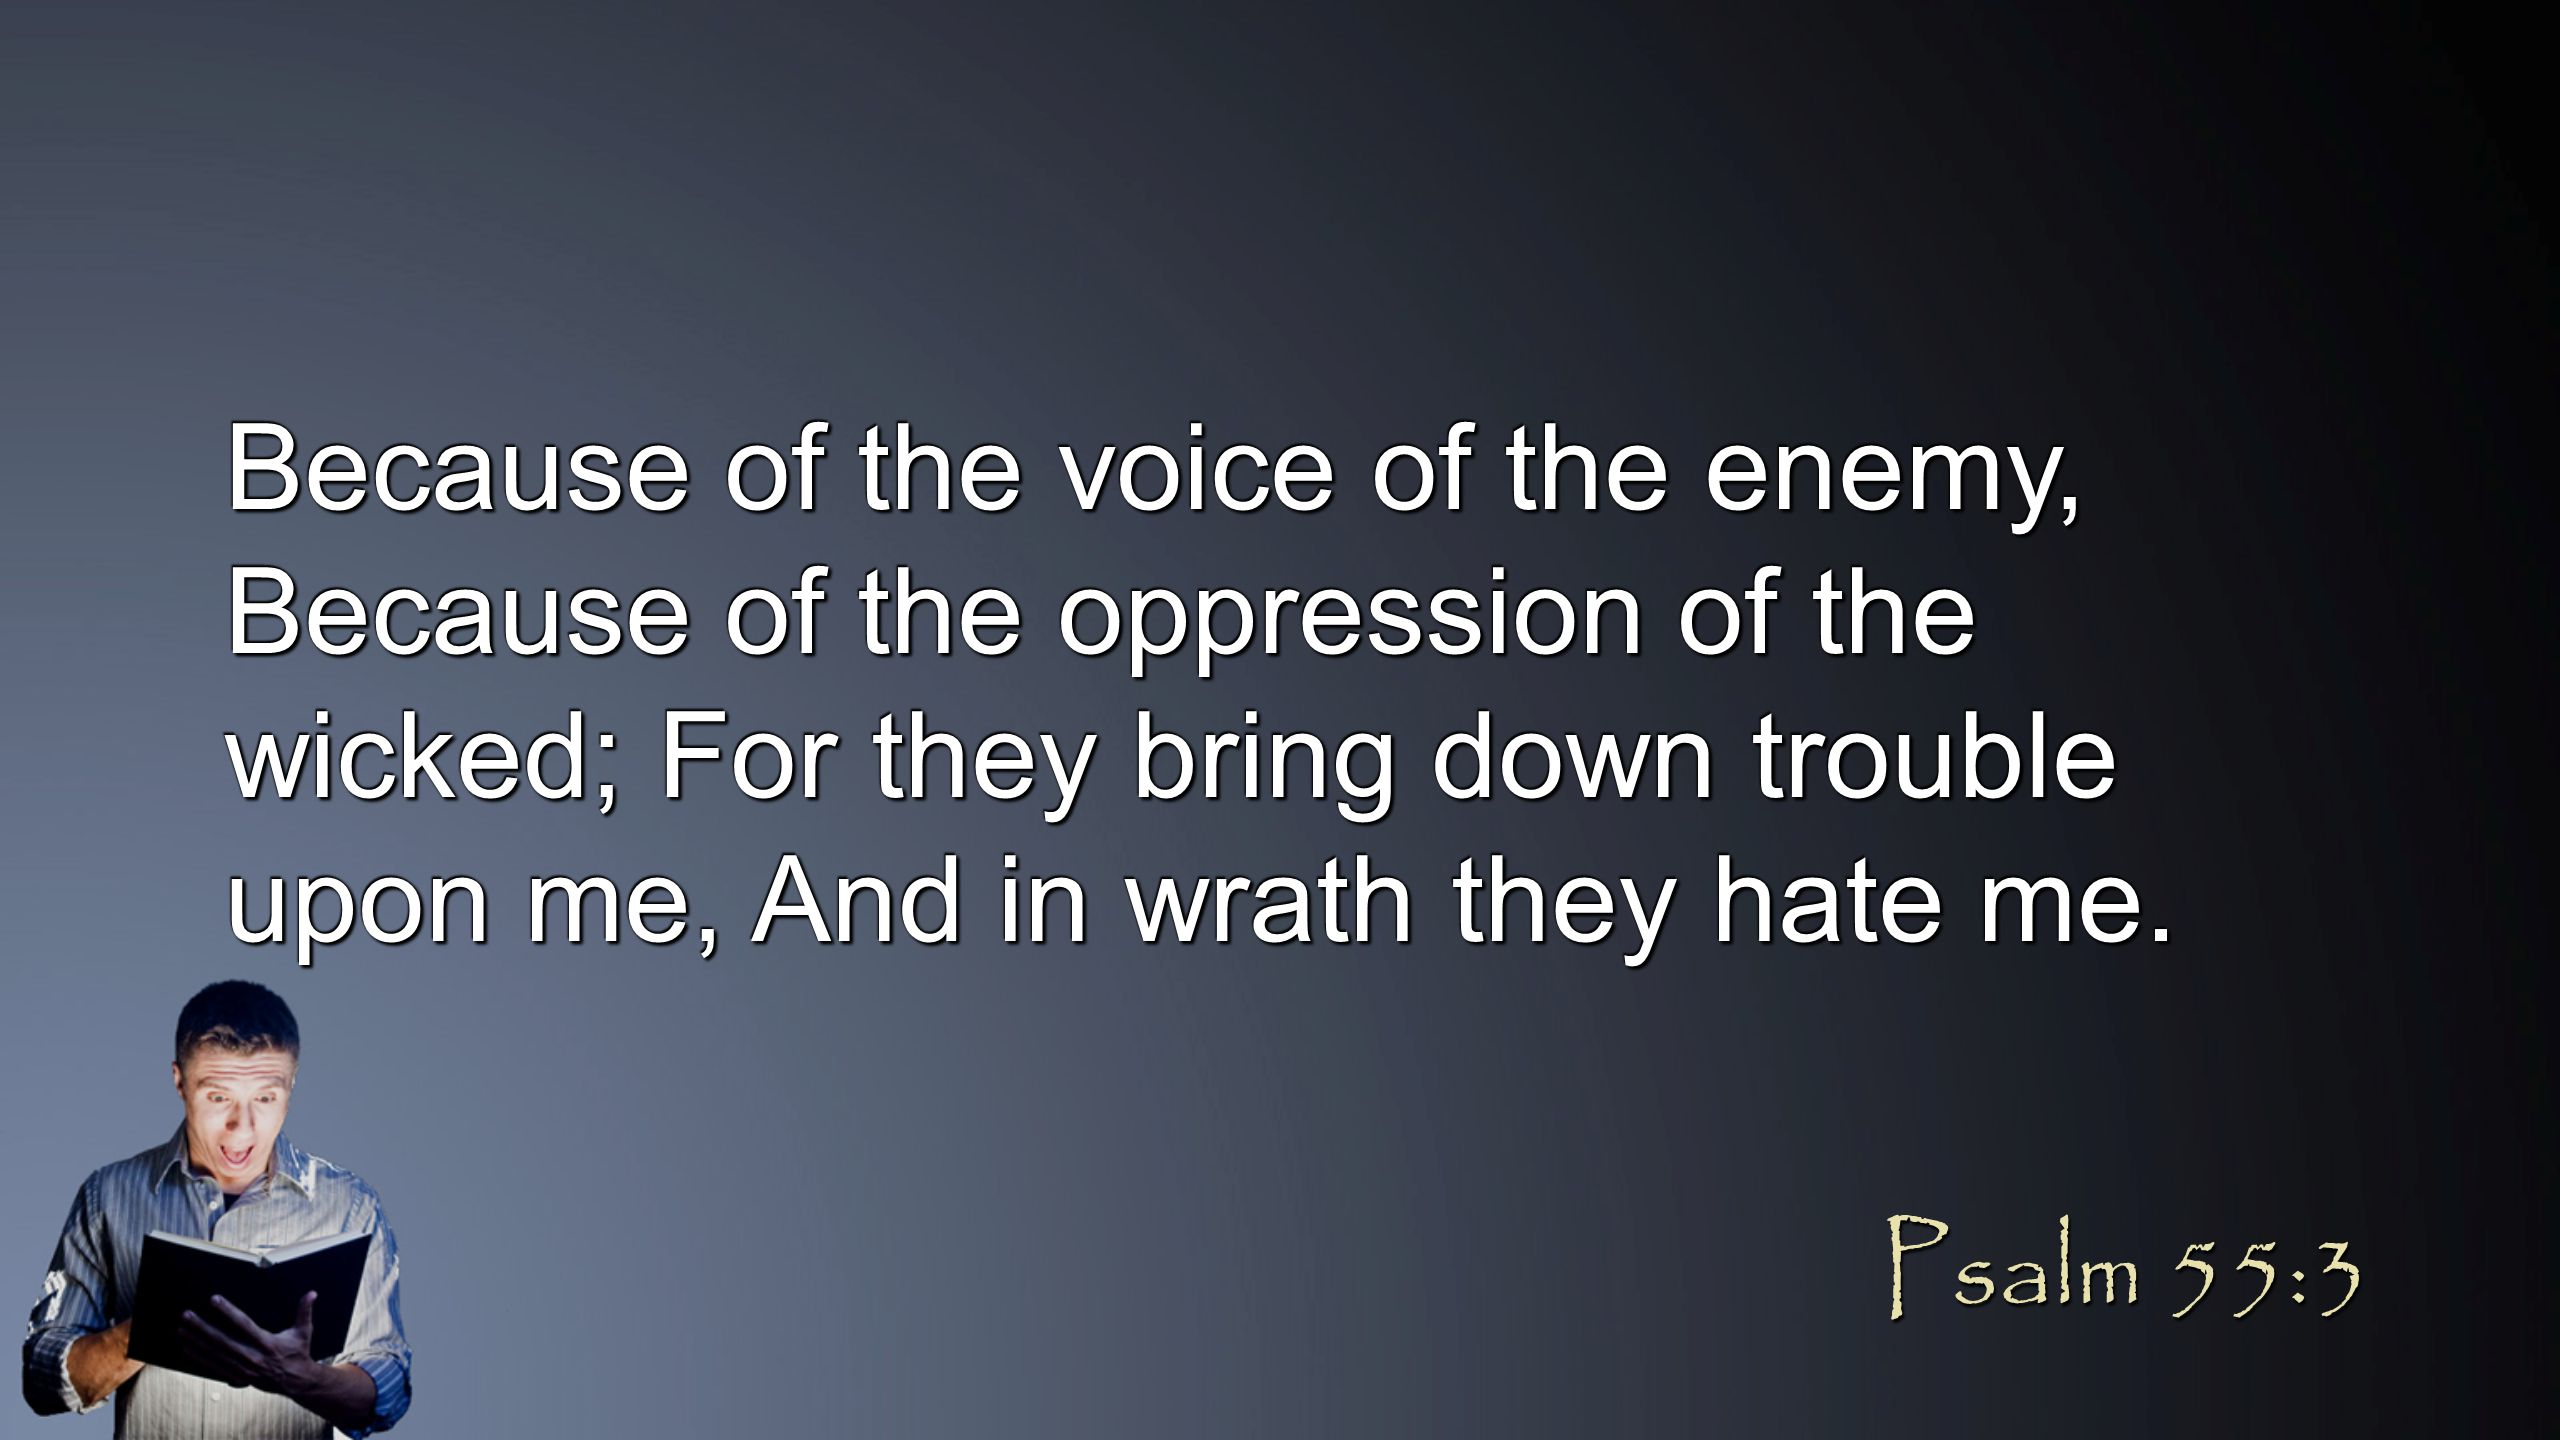 Because of the voice of the enemy, Because of the oppression of the wicked; For they bring down trouble upon me, And in wrath they hate me. Psalm 55:3